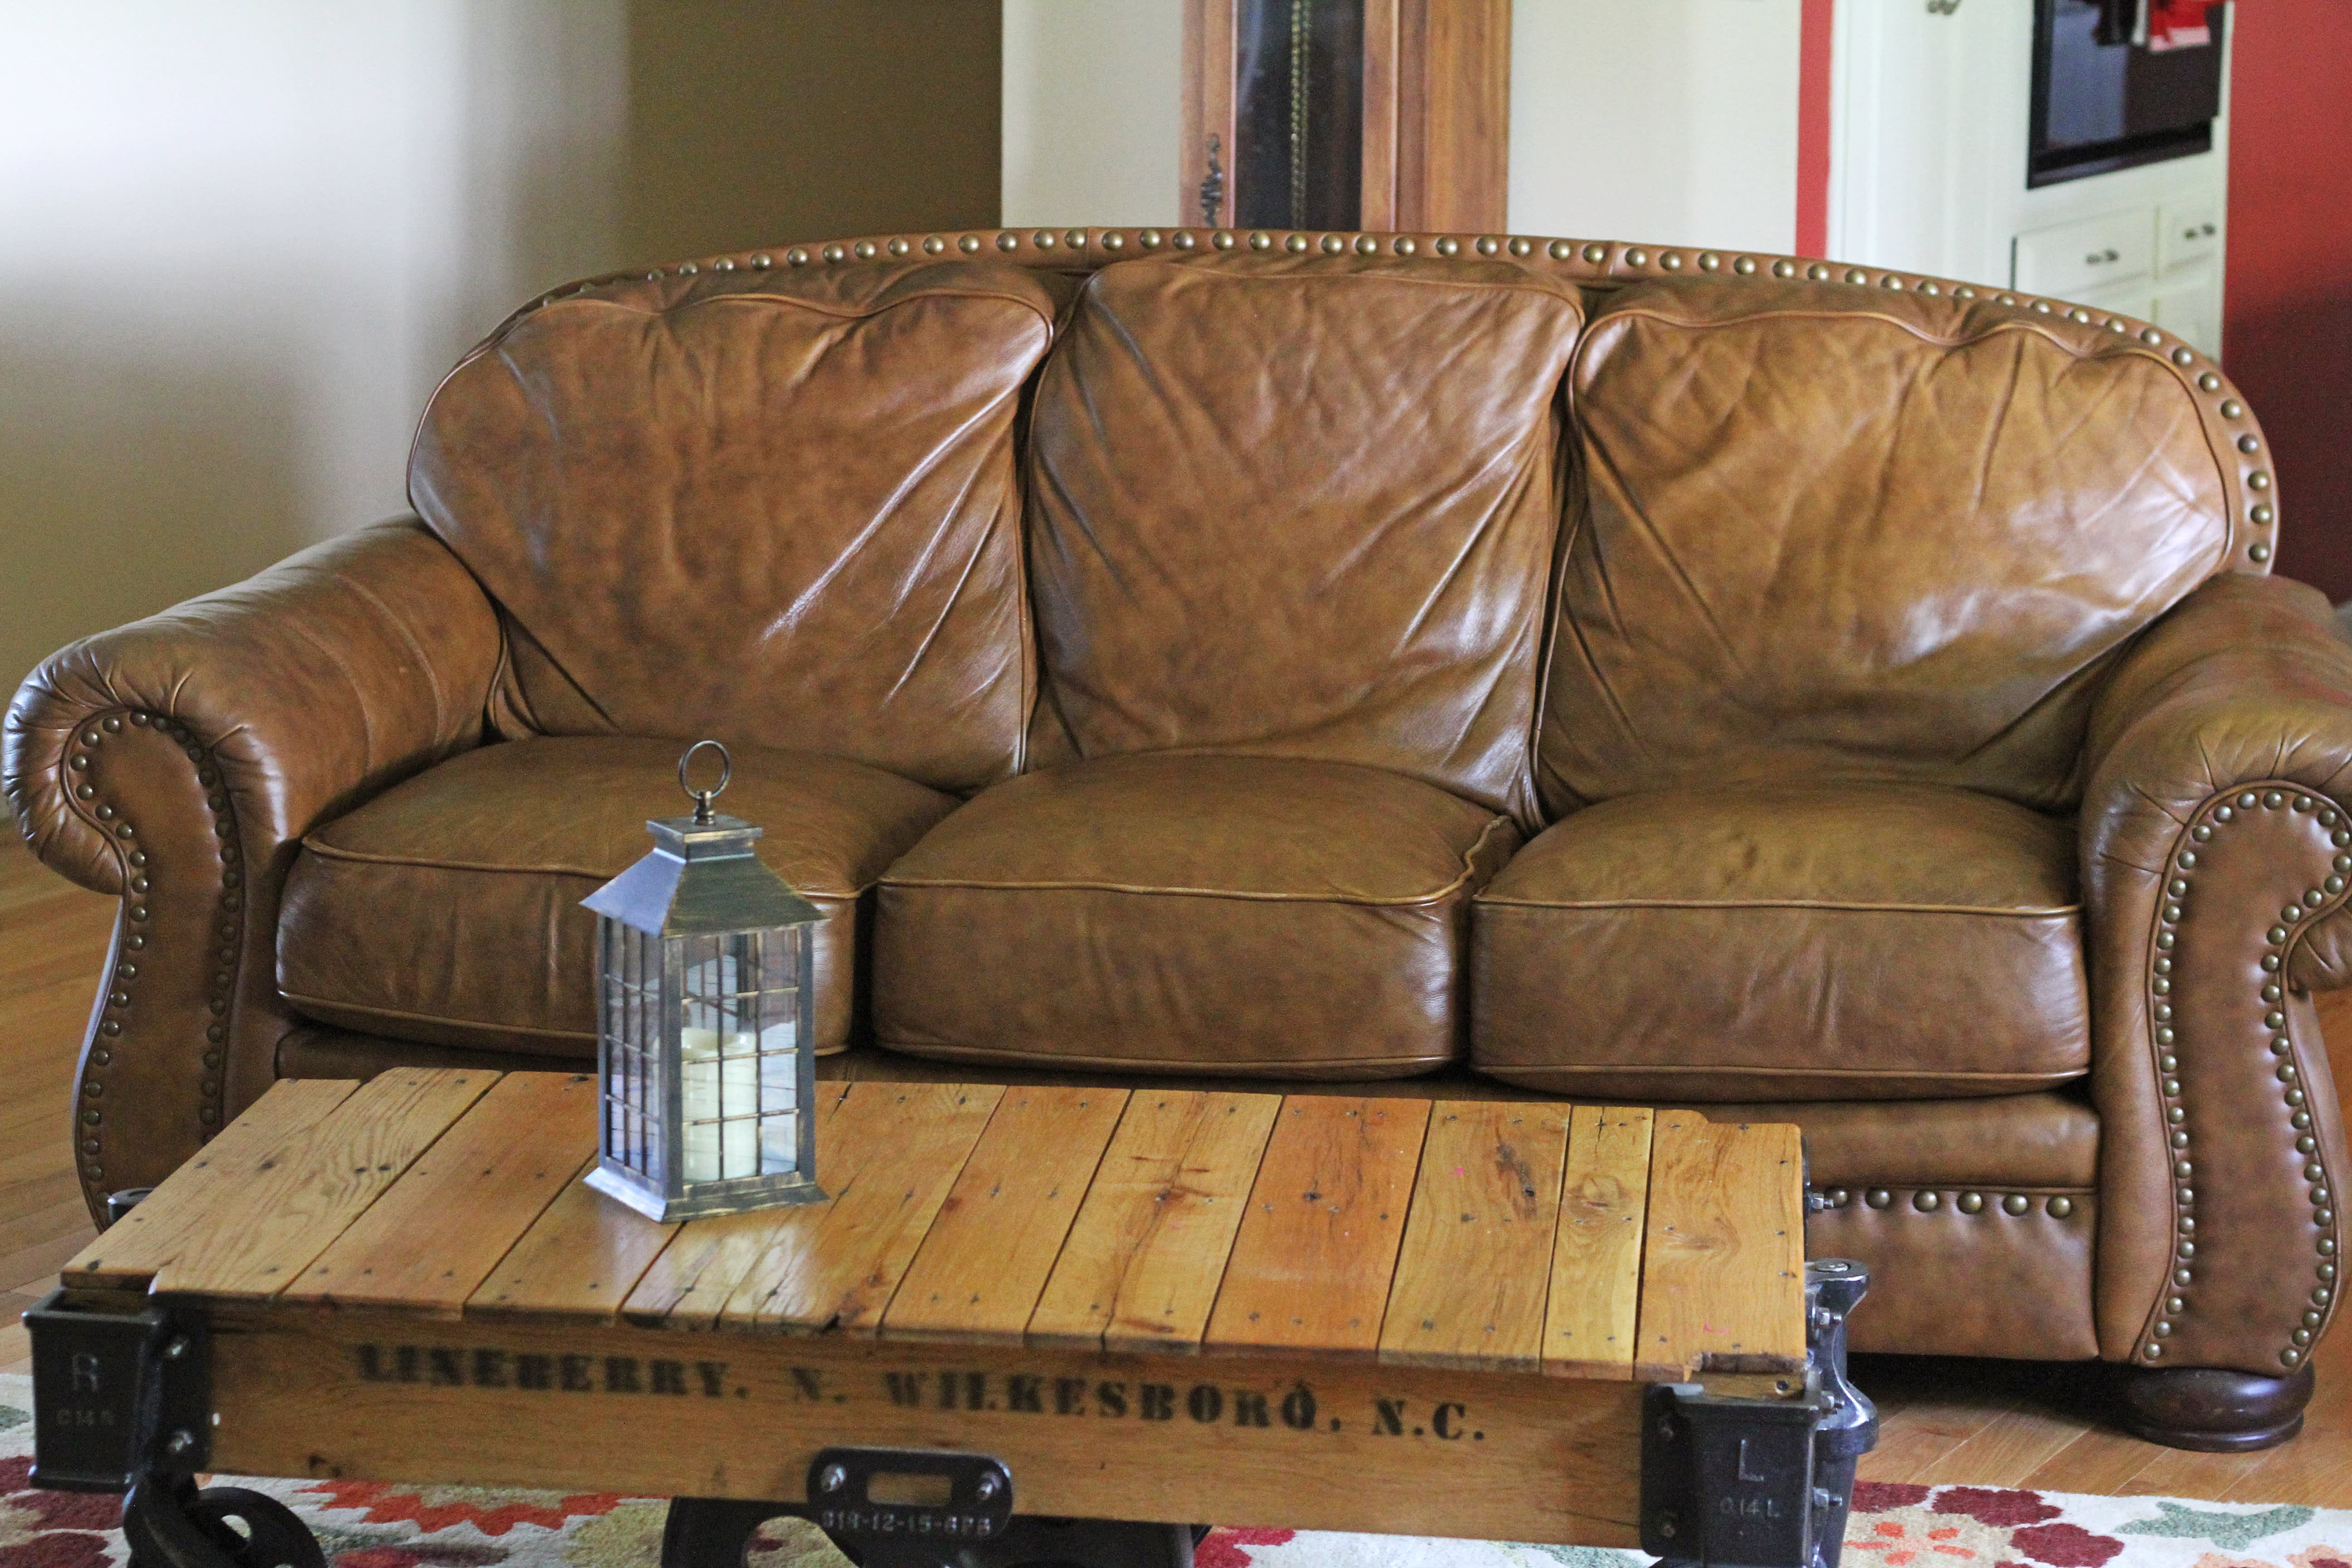 How To Plump Up An Old Saggy Sofa For Around 40 Apartment Therapy